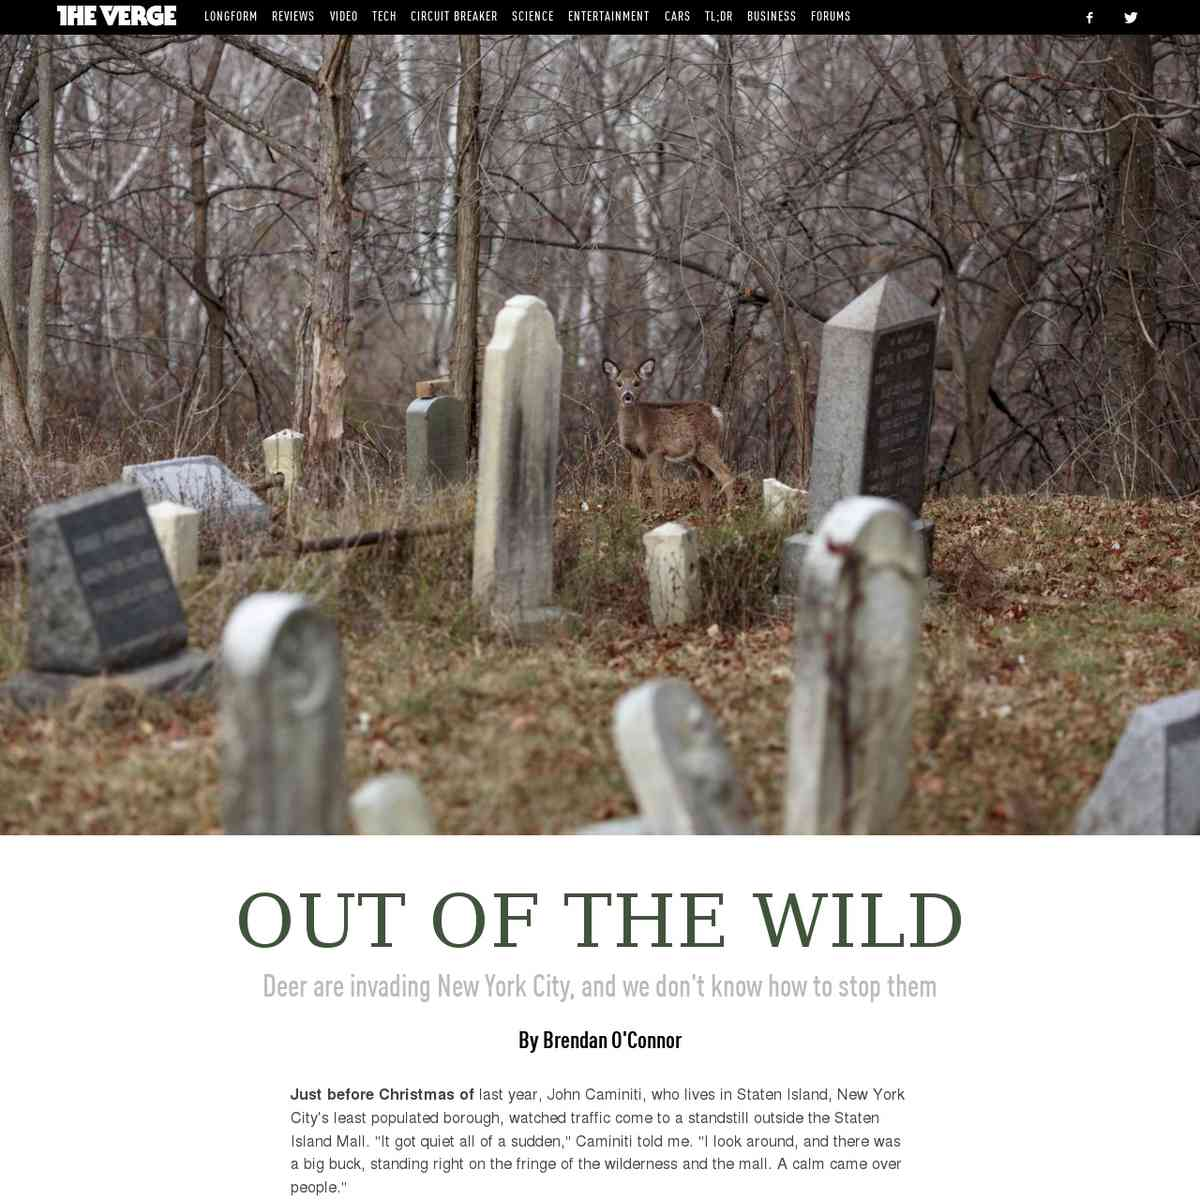 Out of the wild | The Verge